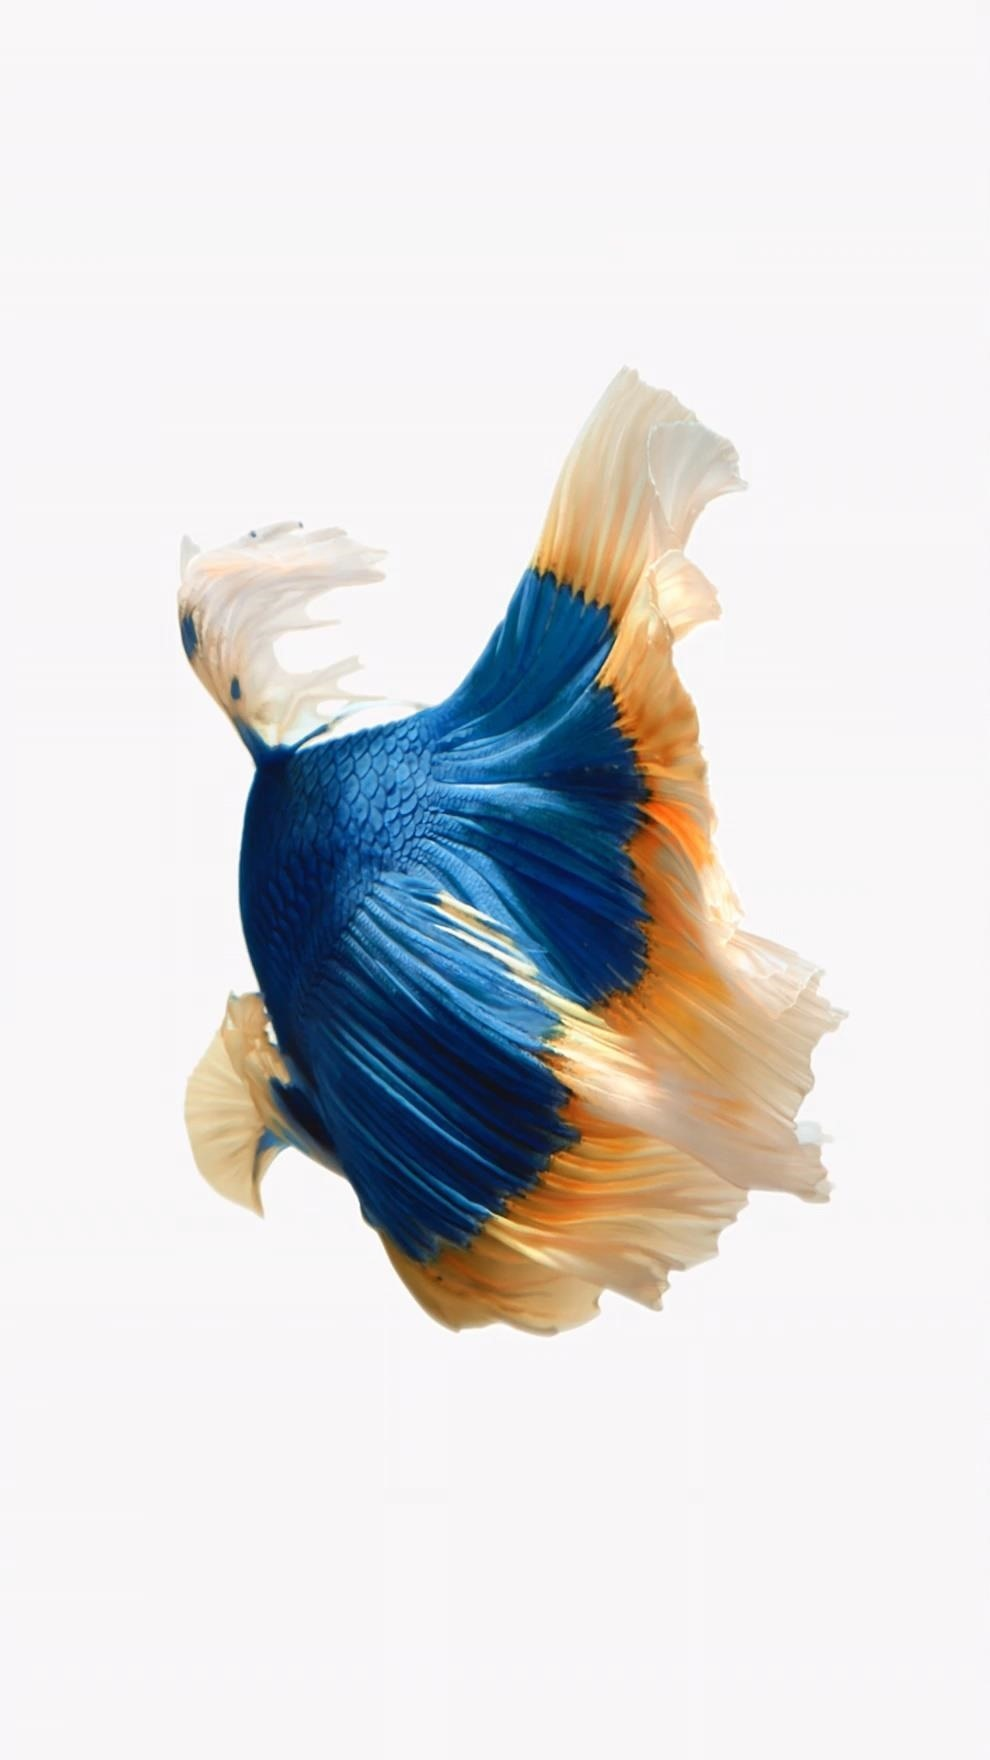 Blue/yellow Fish On Black Background - Iphone 7 Live Photo Gif , HD Wallpaper & Backgrounds